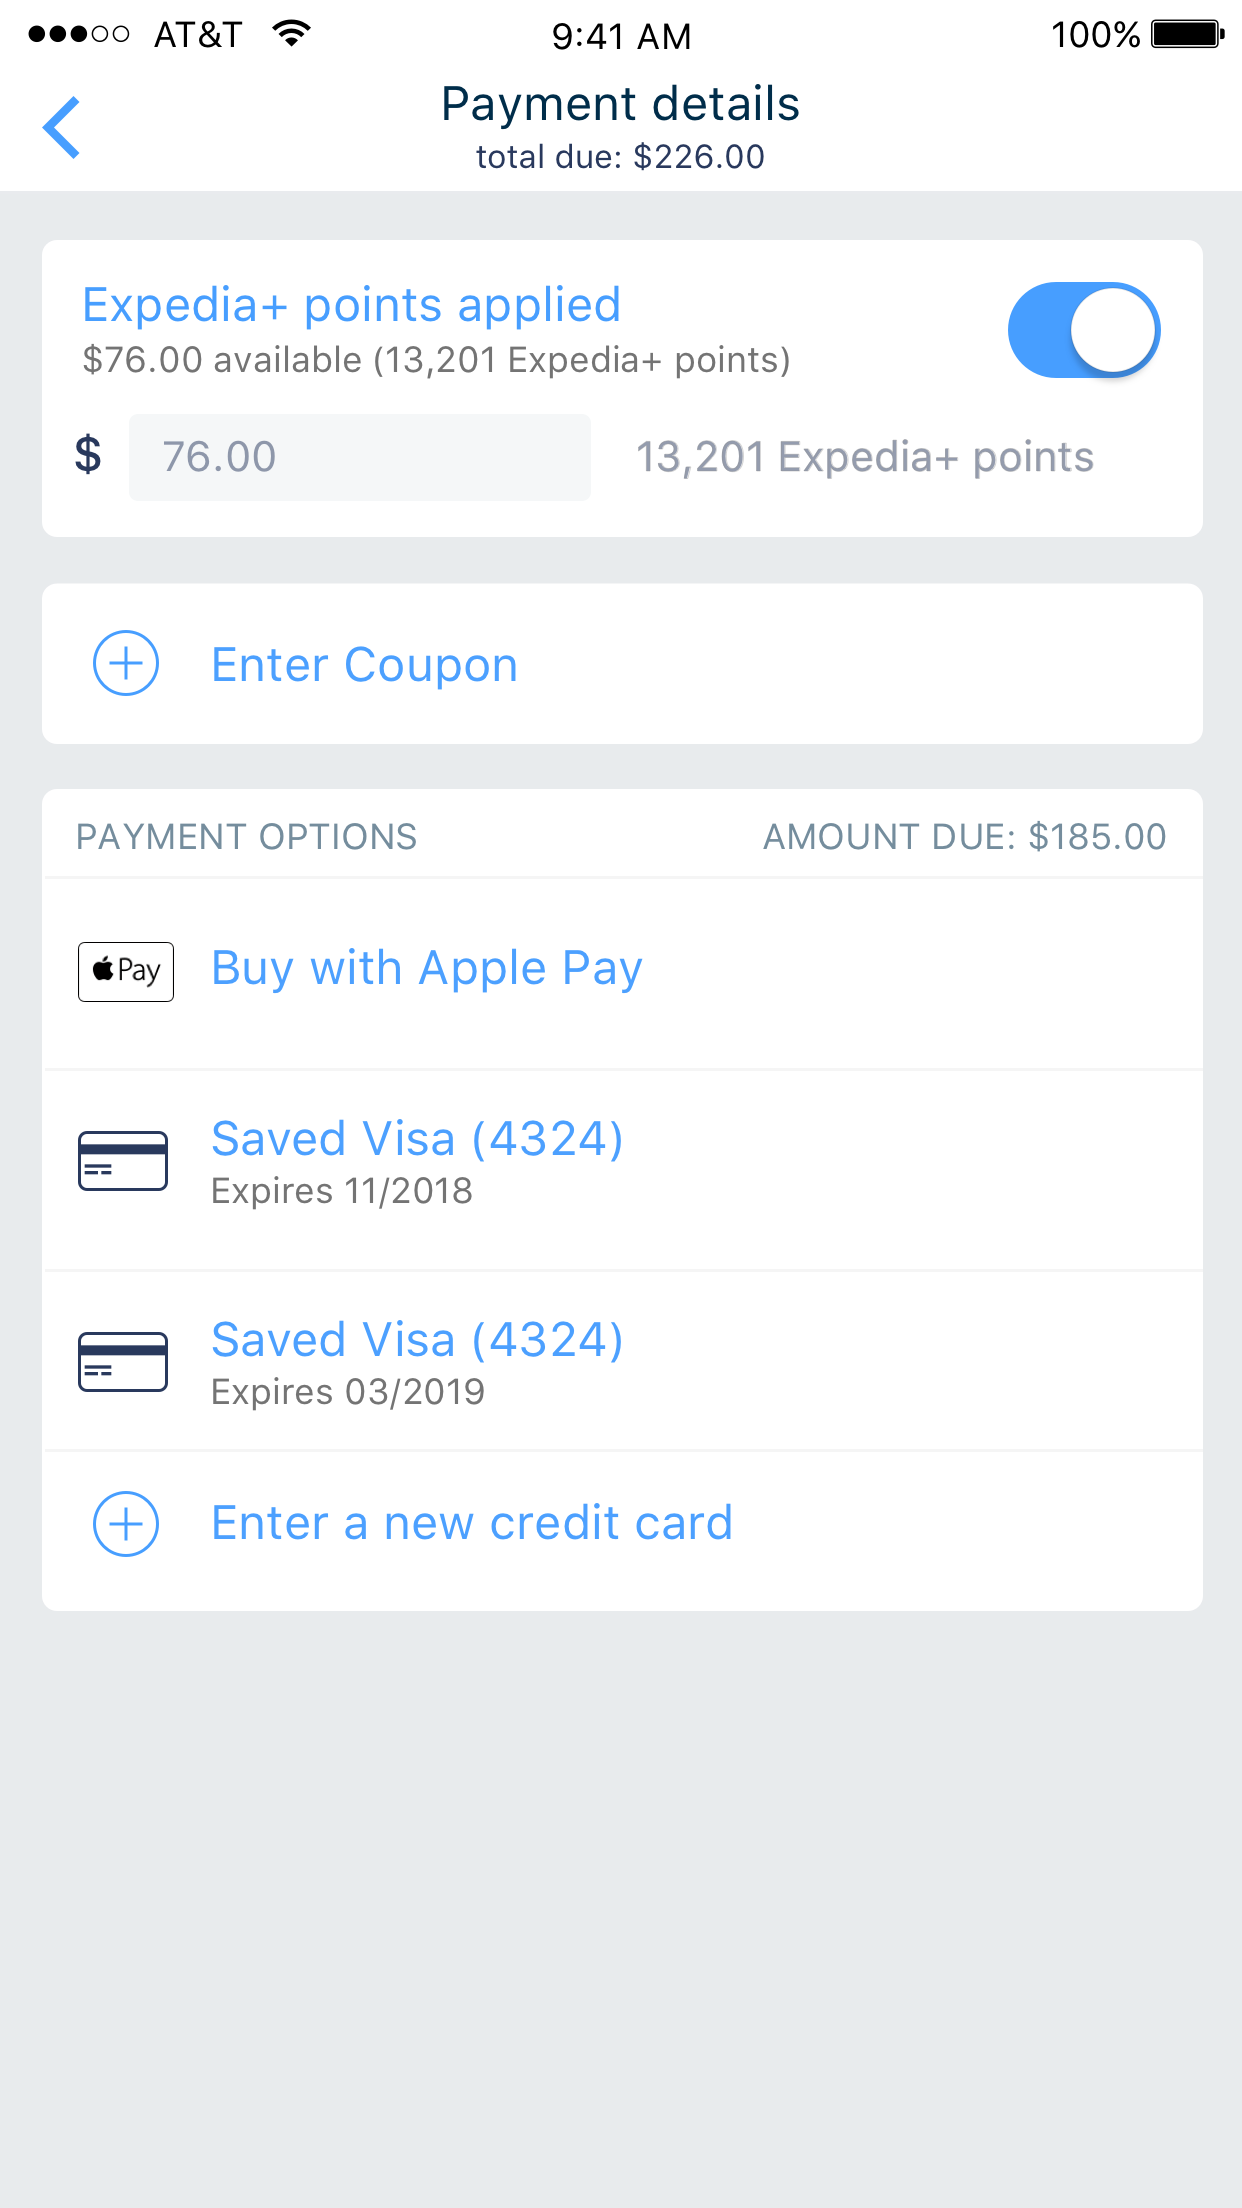 payment details pwp and saved cards.png